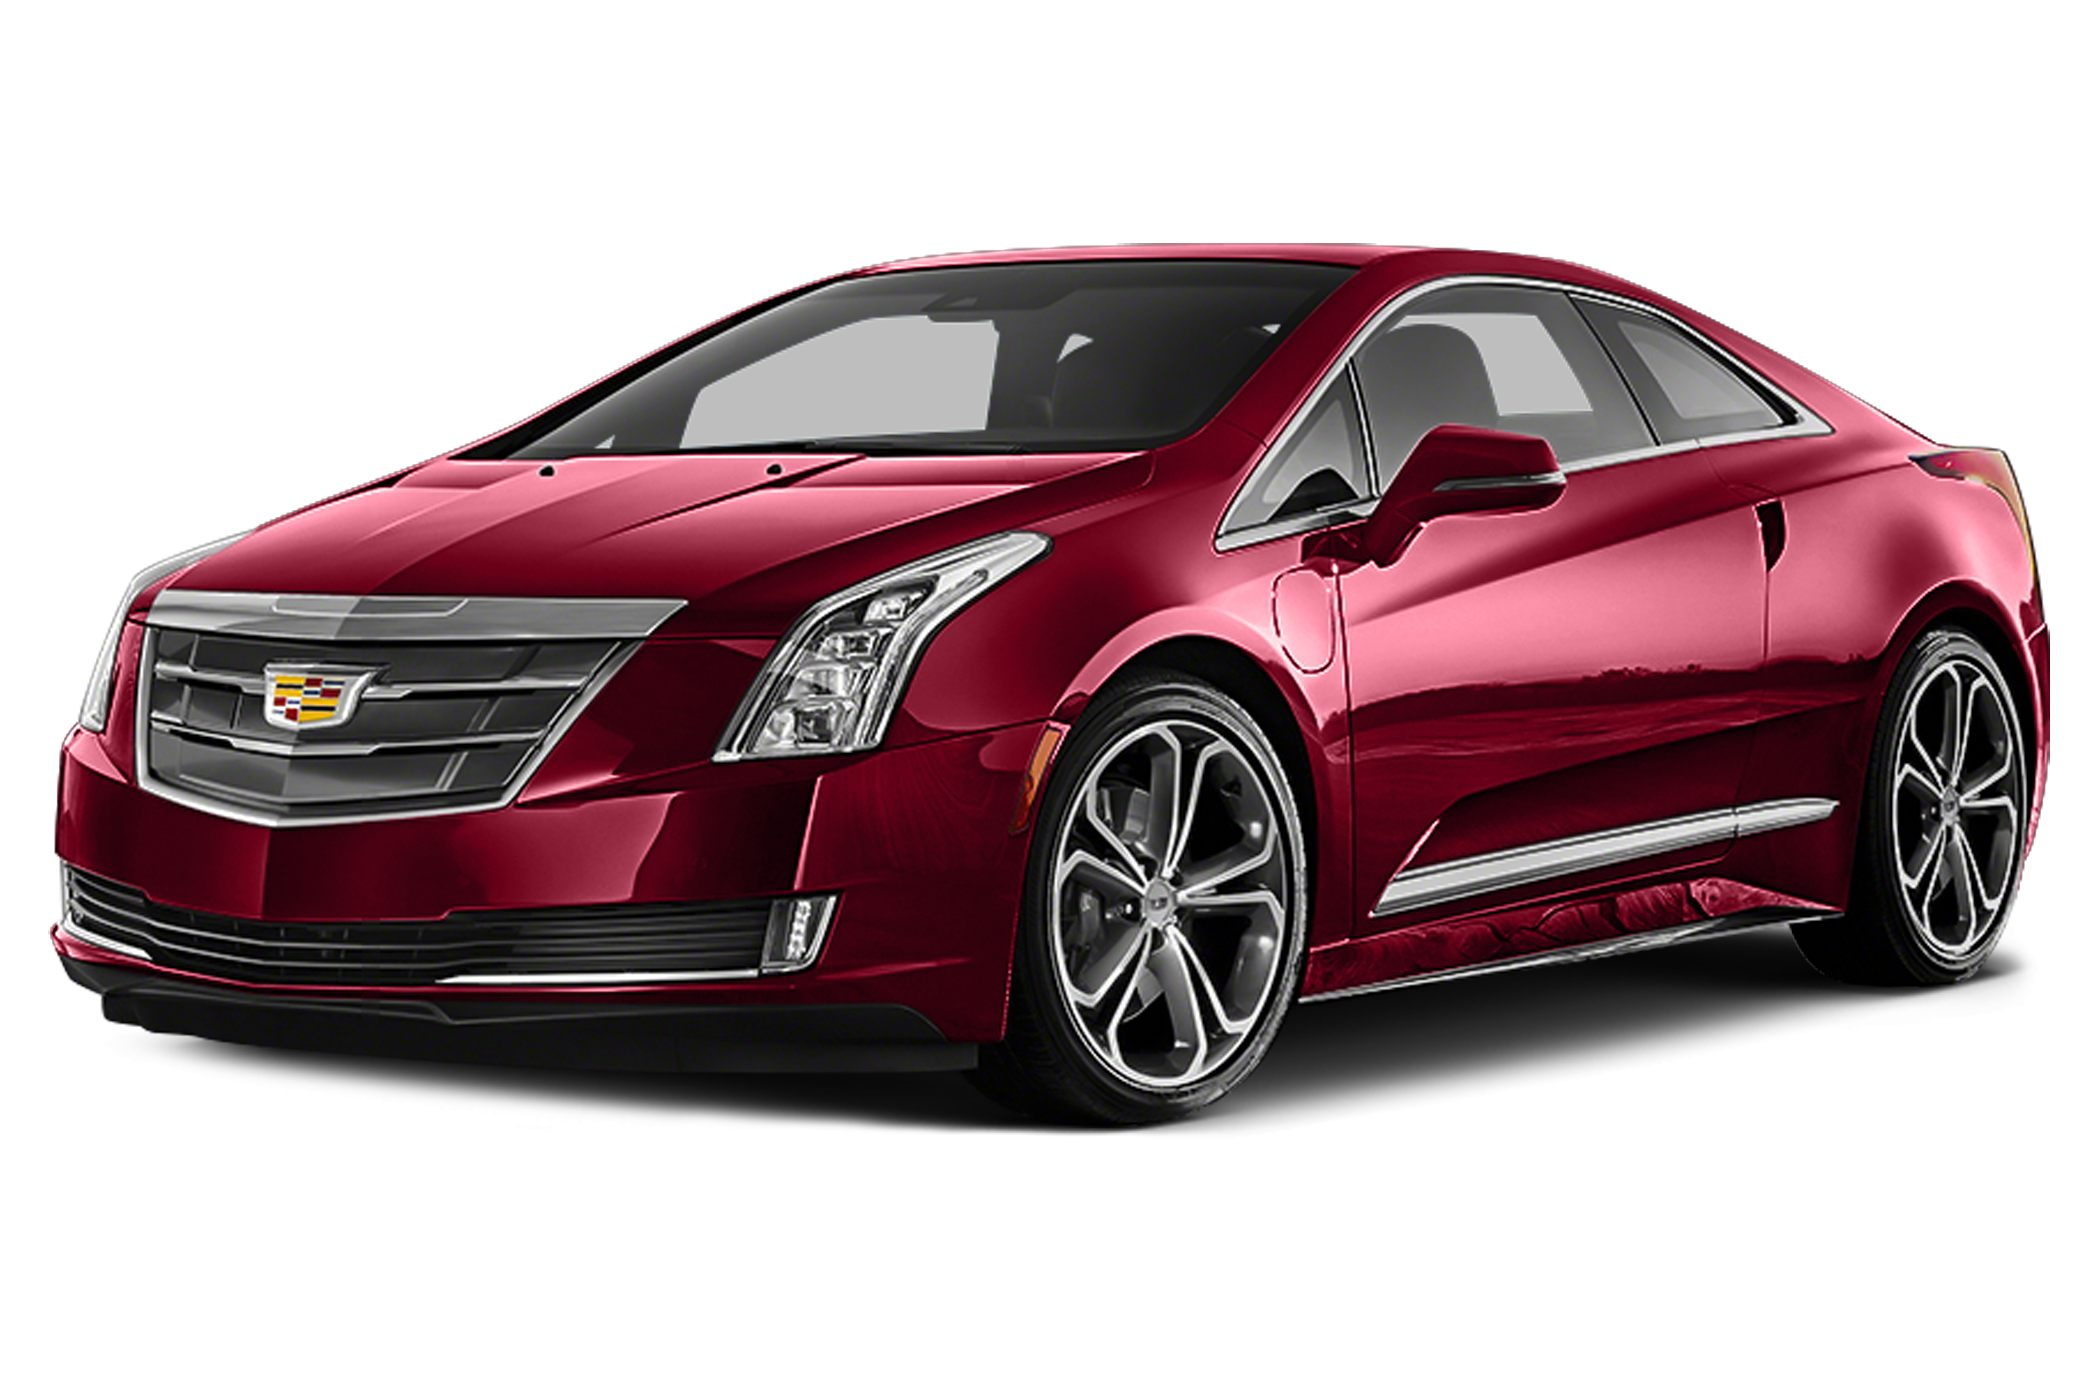 2016CadillacELR